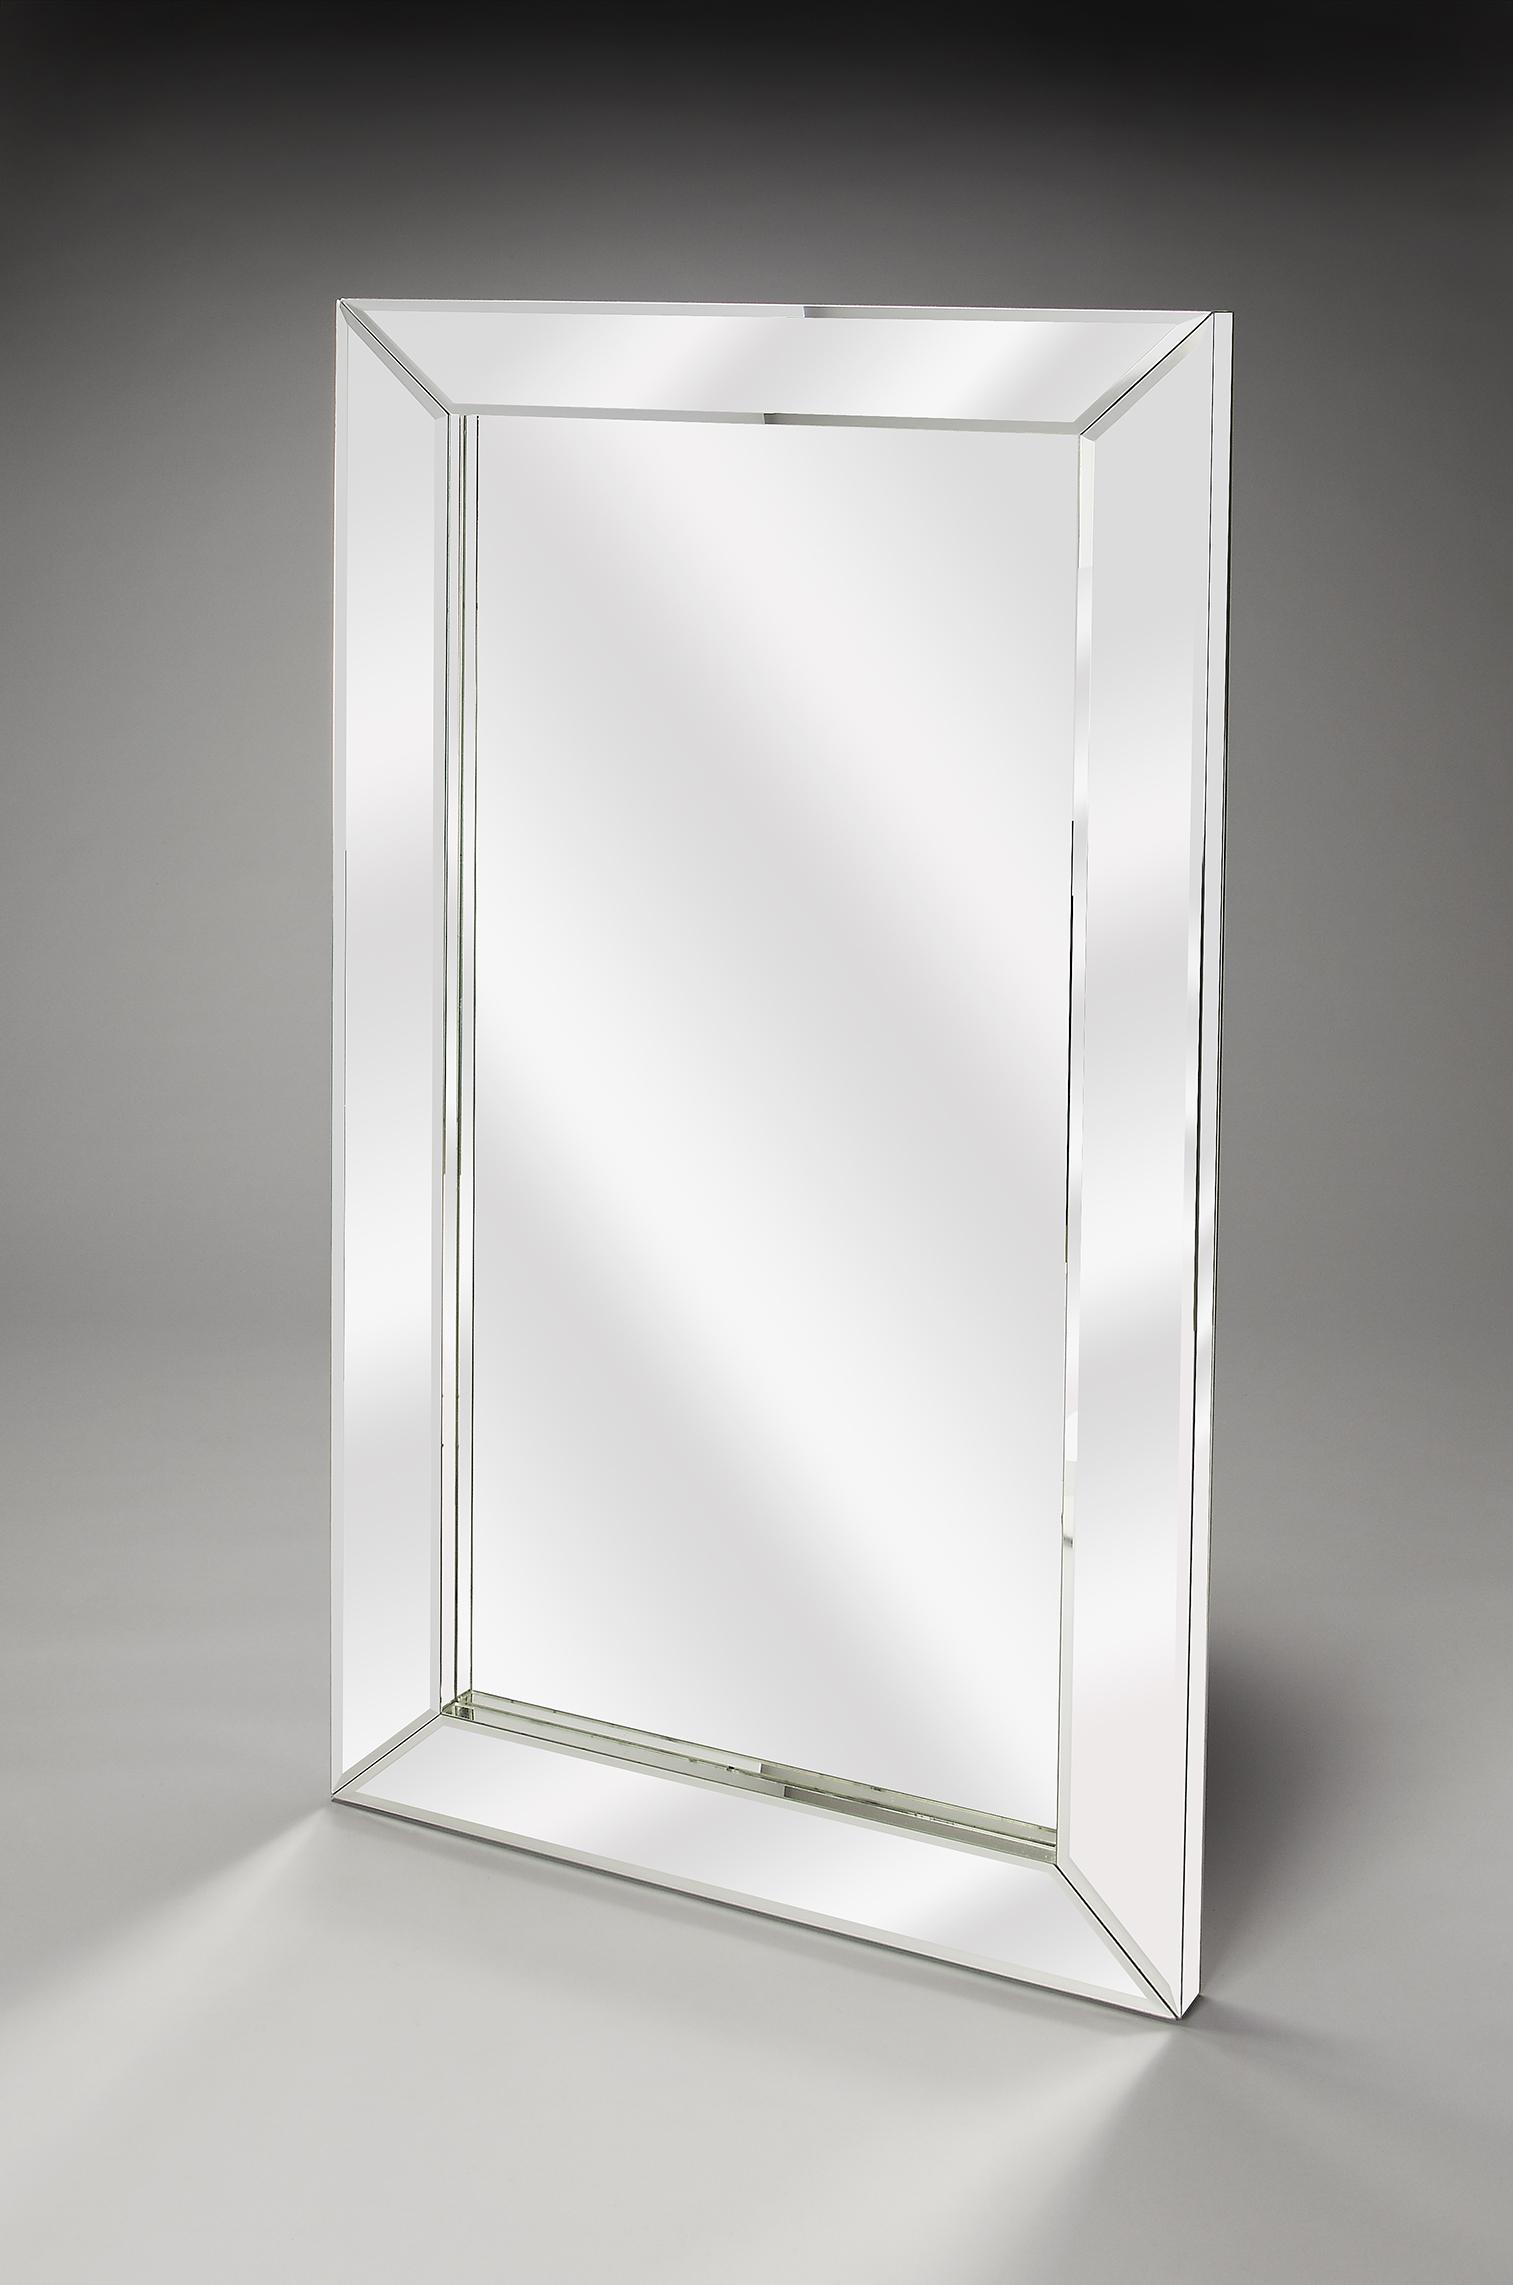 Butler Specialty Company Modern Expressions Wall Mirror - Item Number: 4214146